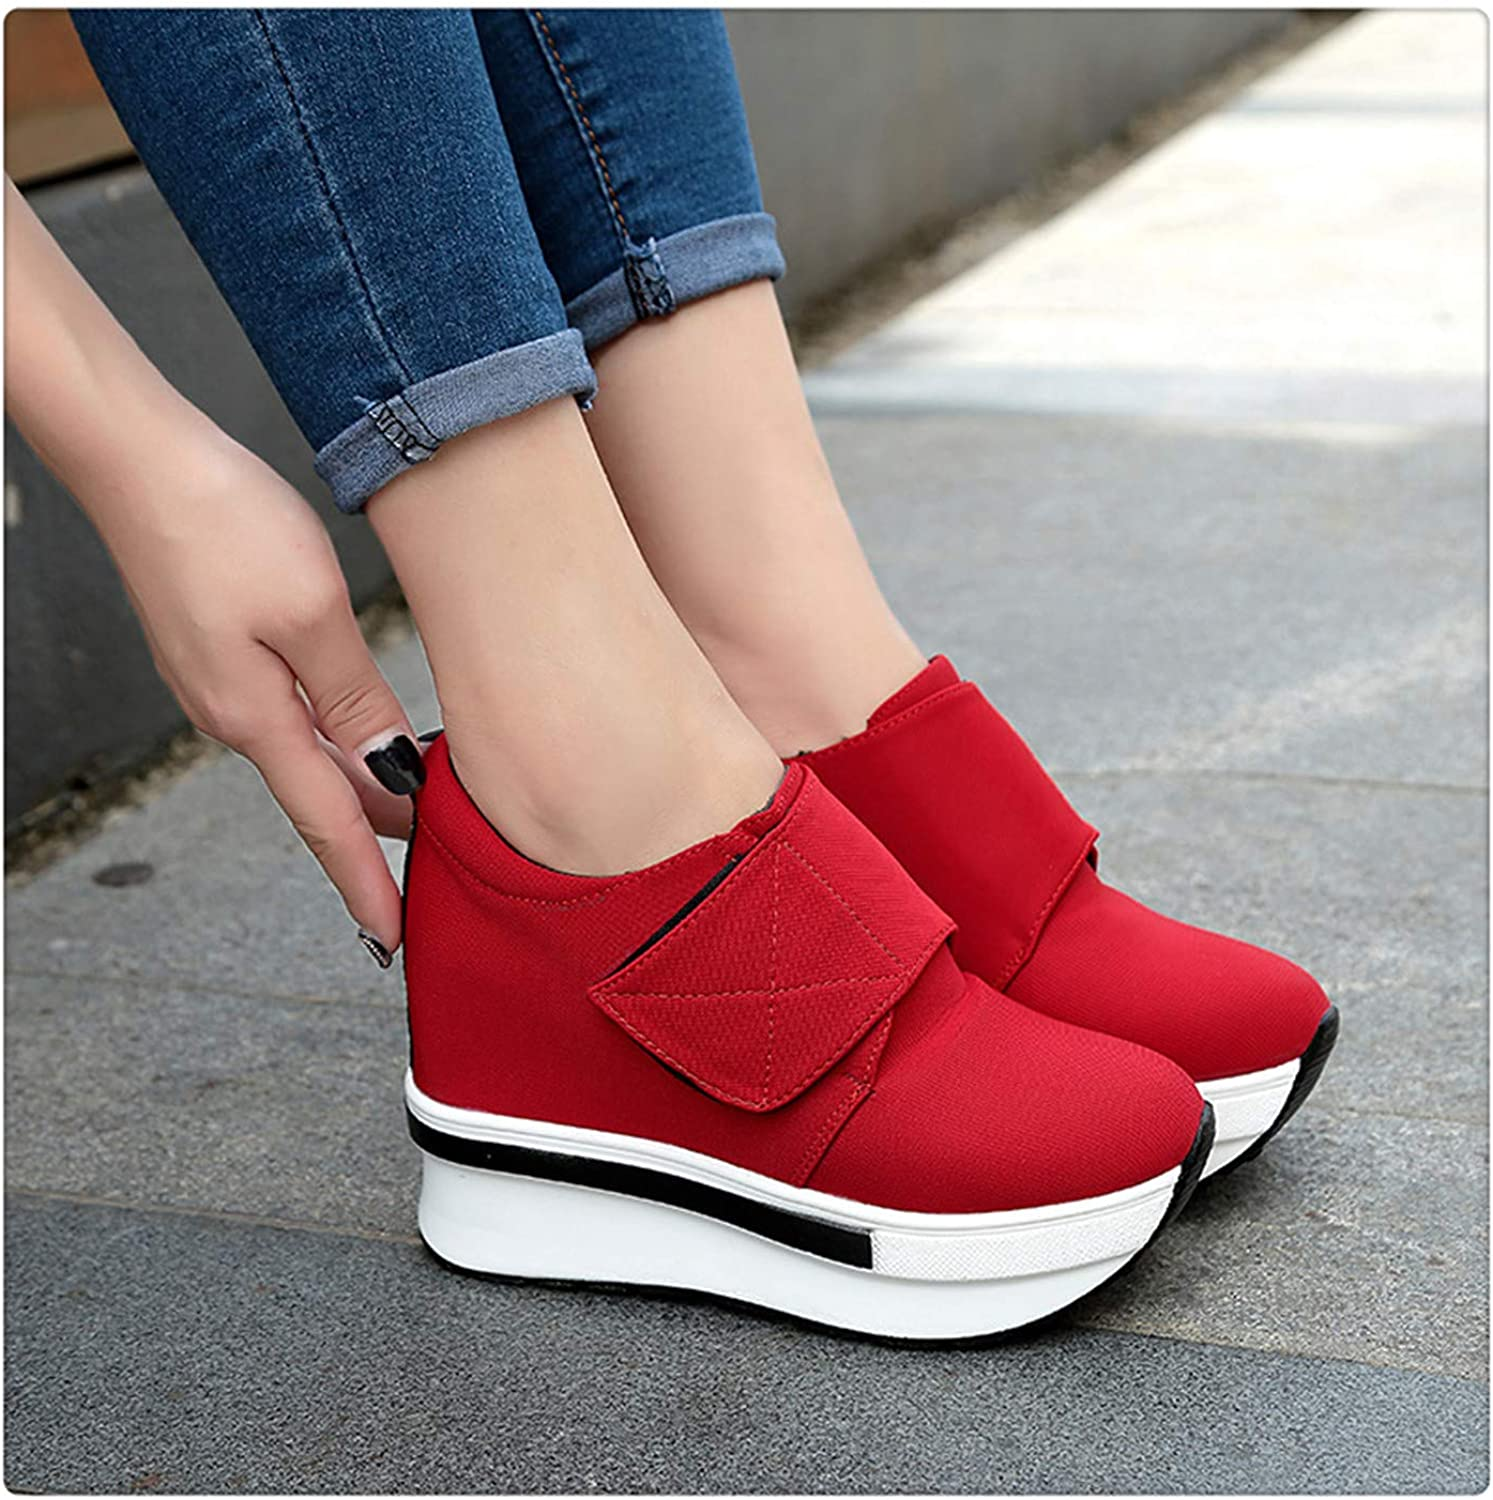 Msanlixian Adult Platform Sneakers Women Casual shoes Height Increase Vulcanize shoes Ladies Wedges shoes for Women Tenis Feminino Red 7.5